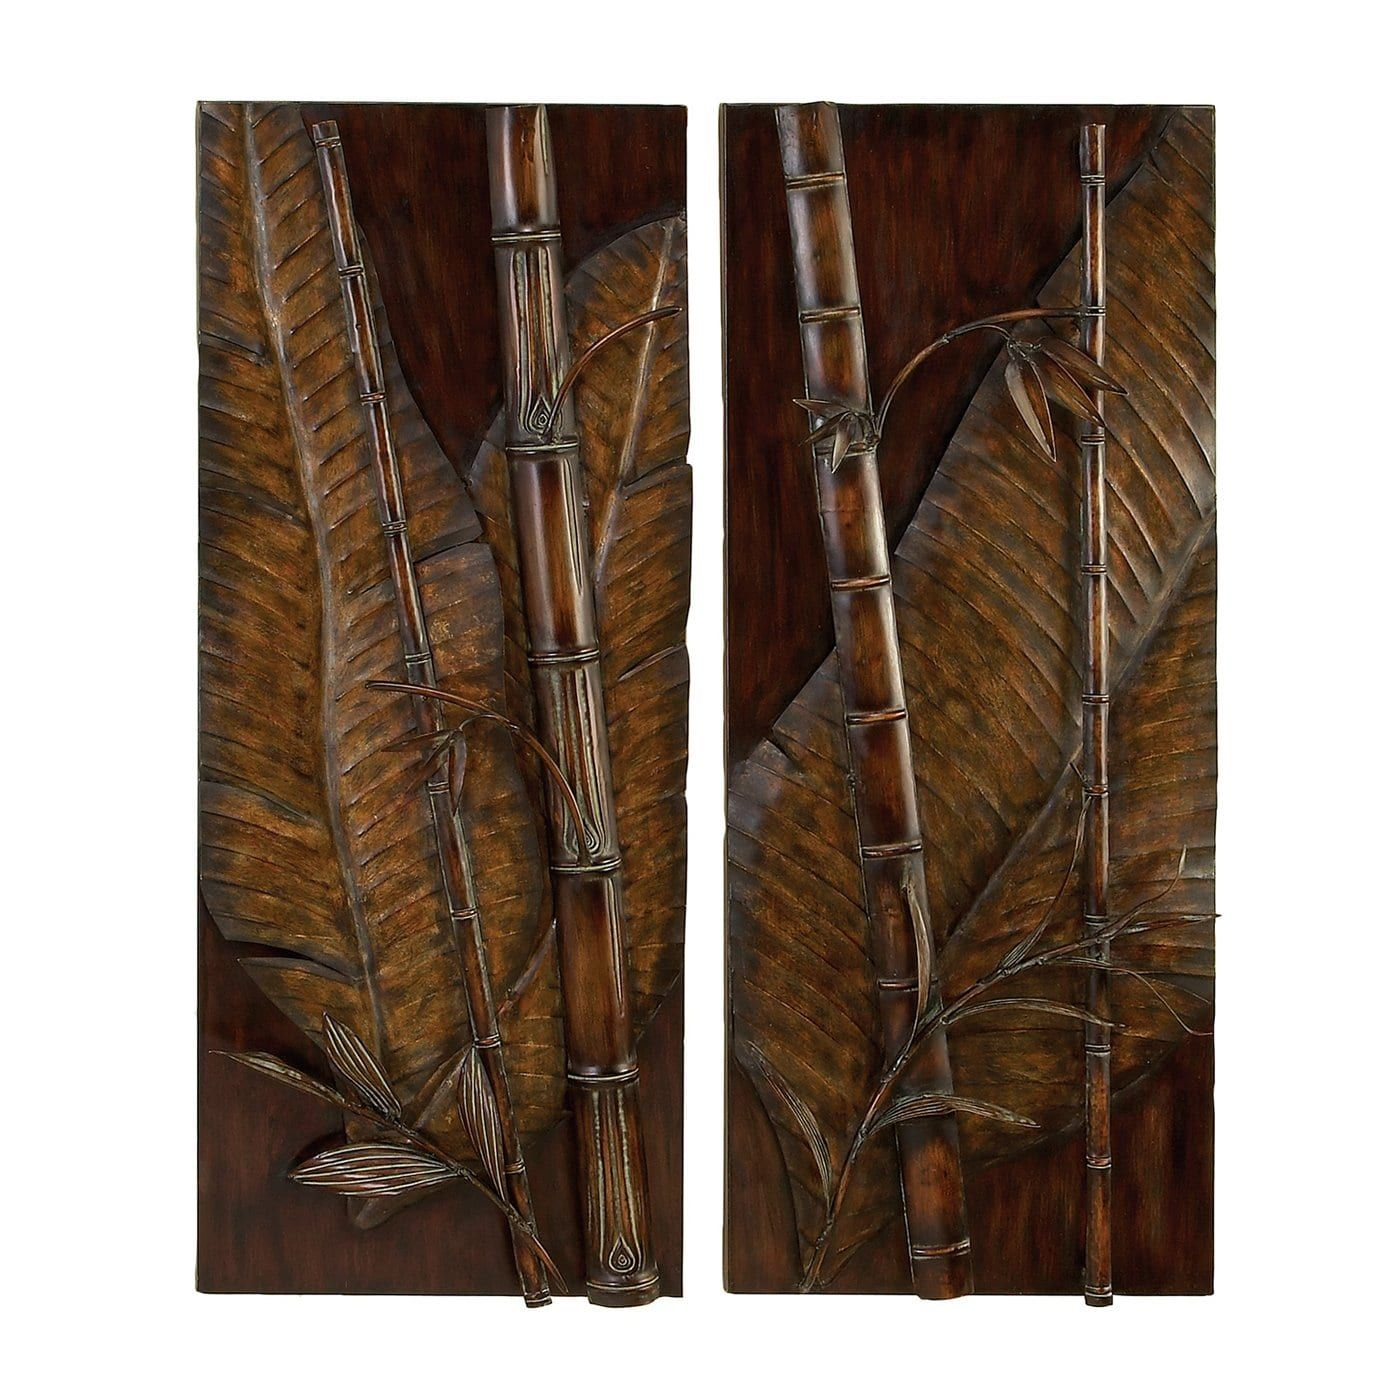 Shop Aspire Home Accents 13036 Tropical Metal Wall Art Set Of 2 At The Mine Browse Our Meta Metal Tree Wall Art Tropical Metal Wall Art Large Metal Wall Art